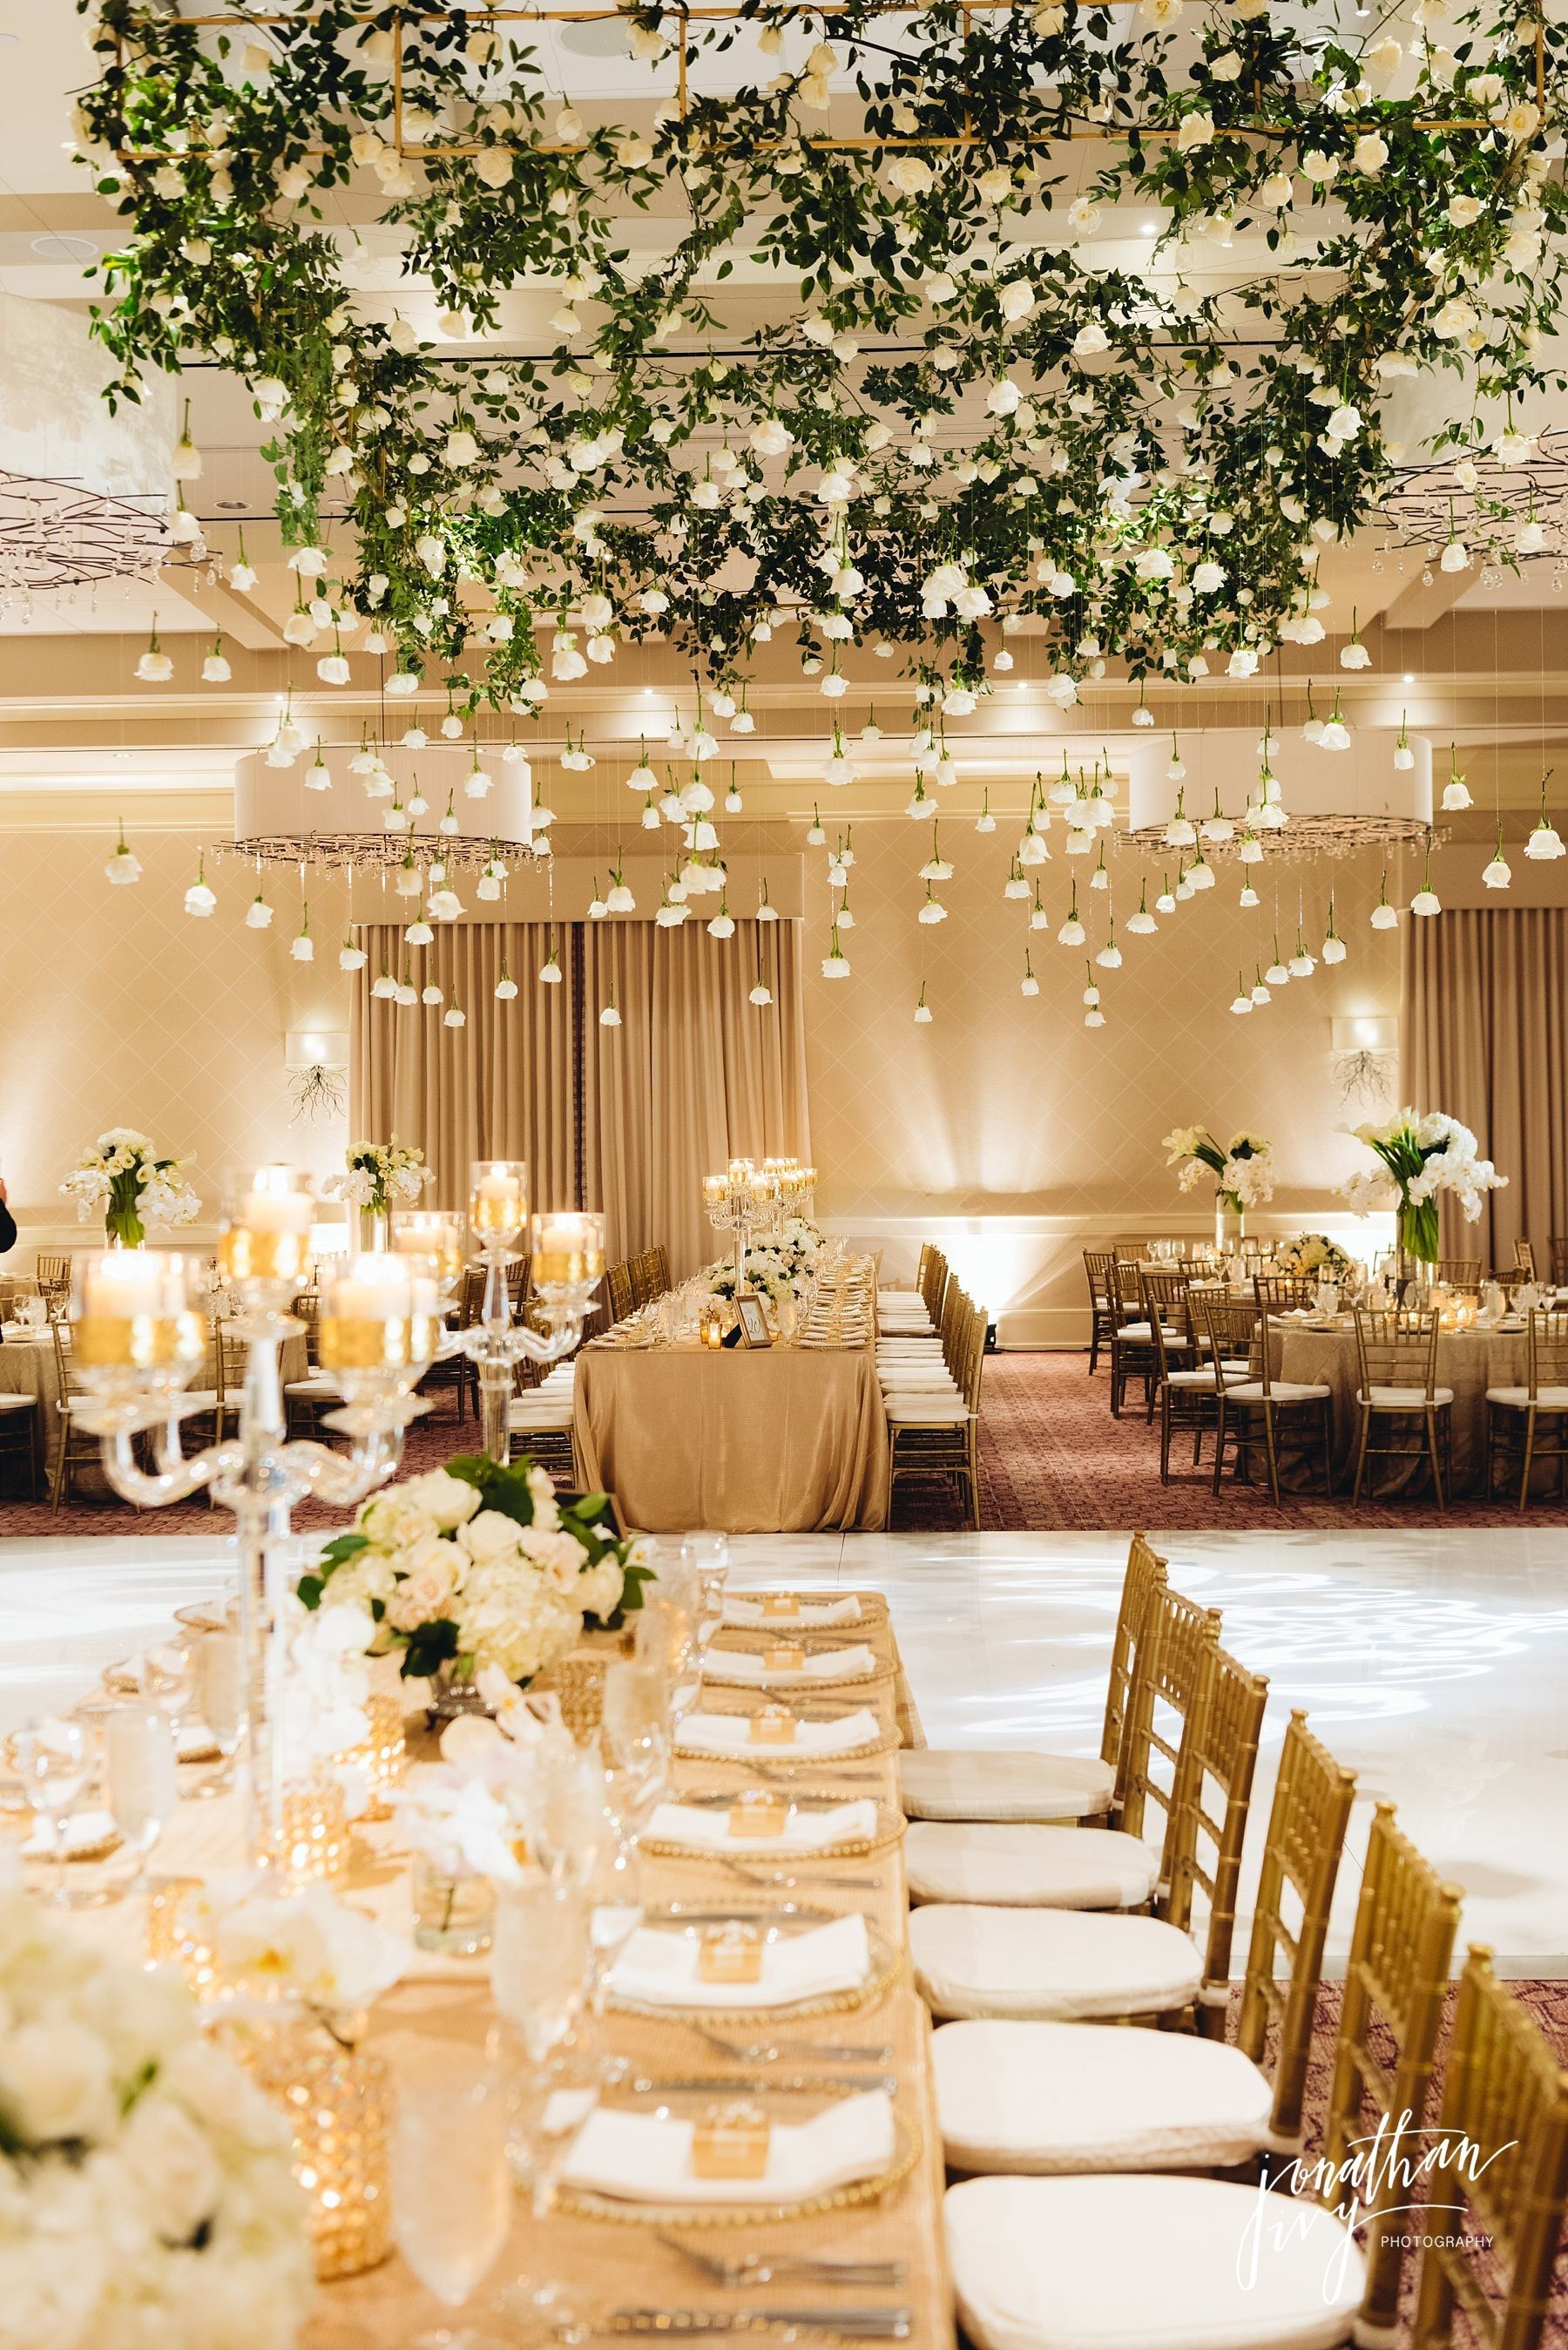 The briar club white and gold wedding decor with white rose the briar club white and gold wedding decor with white rose garland dance floor by events junglespirit Image collections